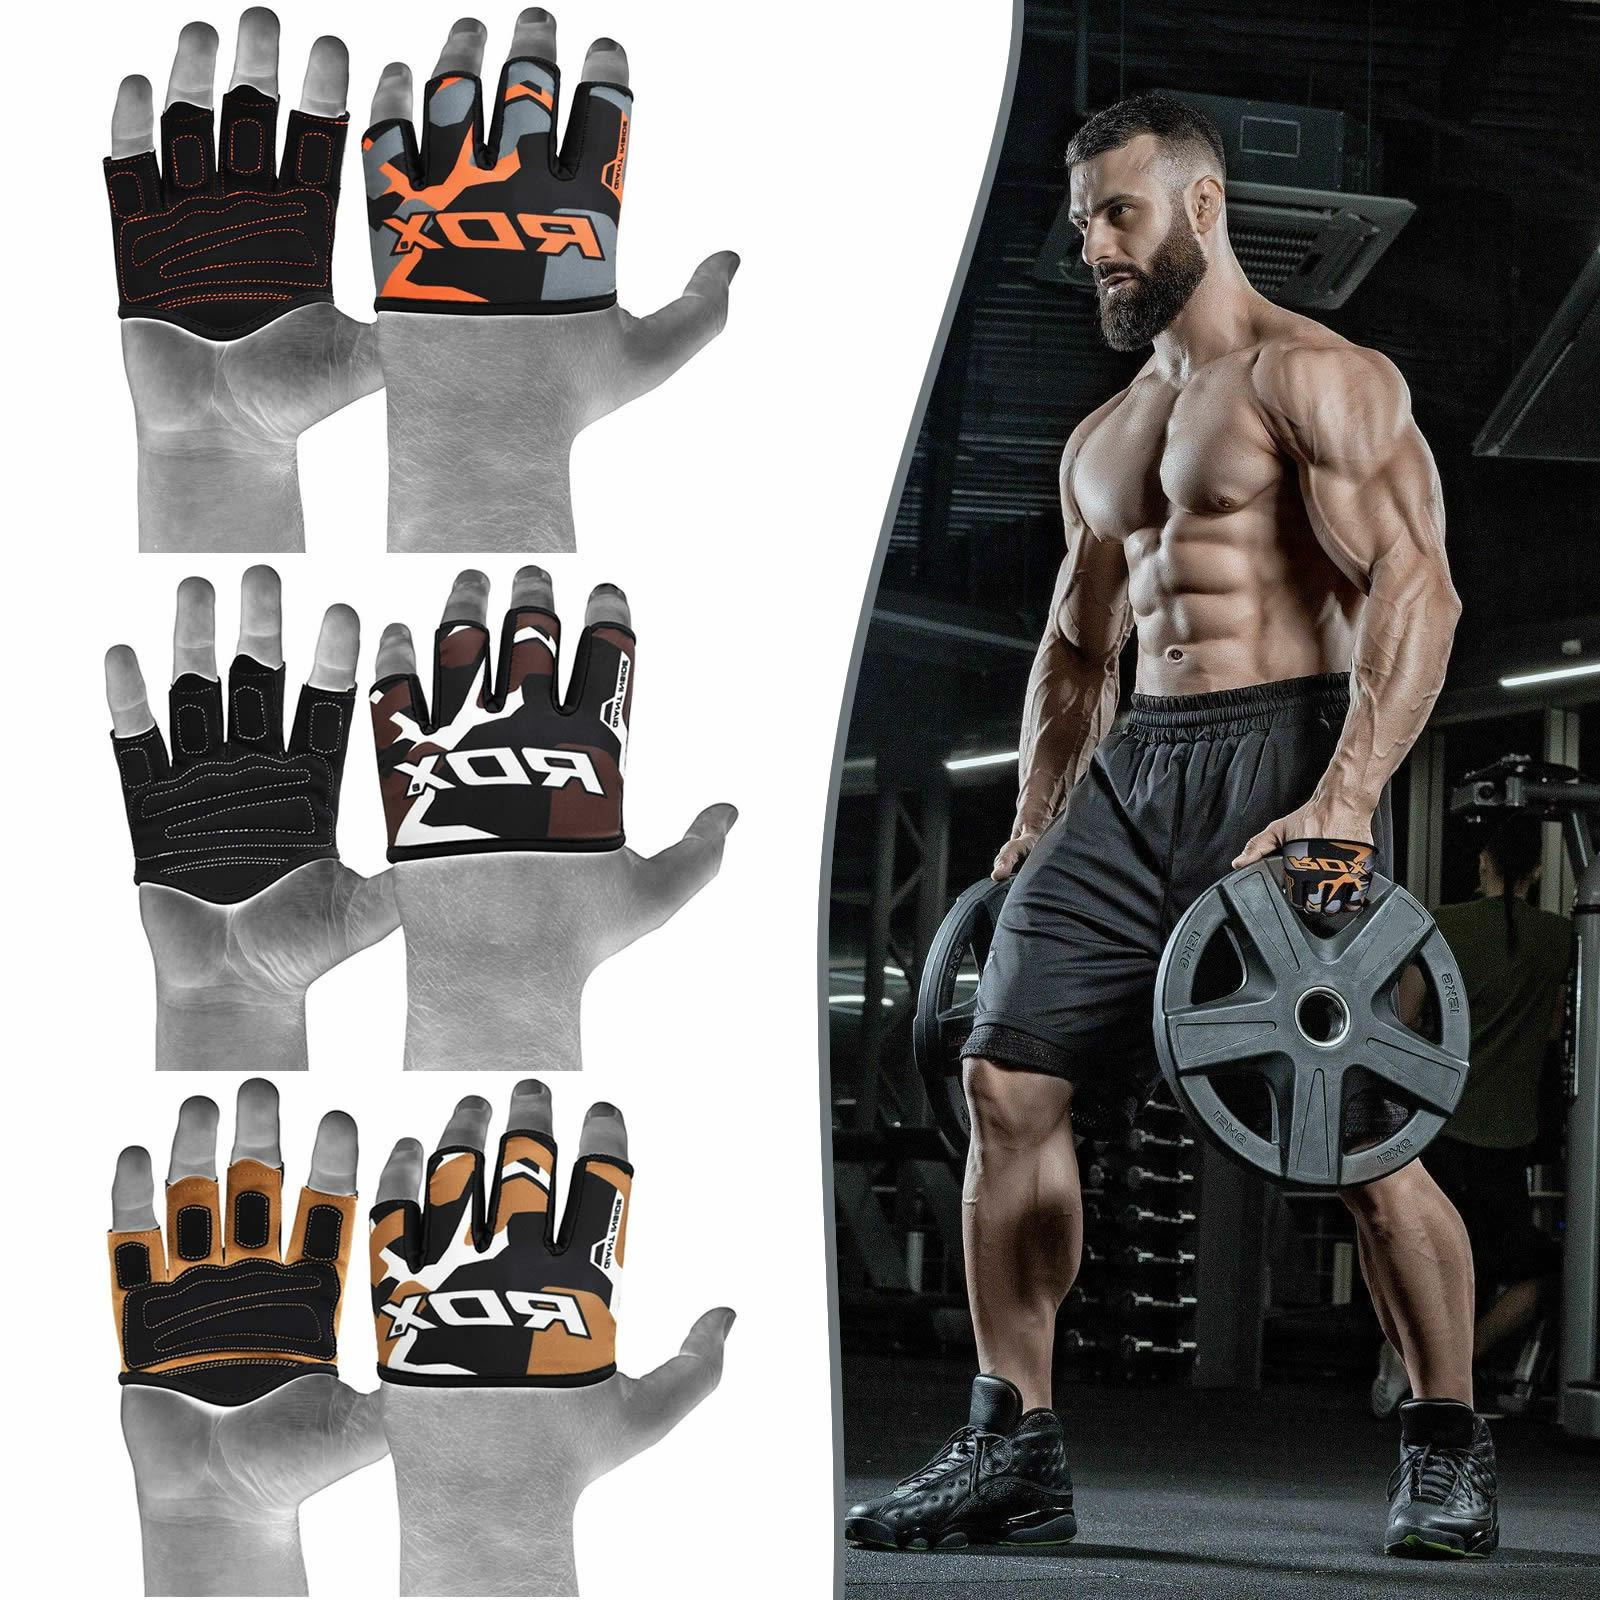 weight lifting grips half cut gym gloves